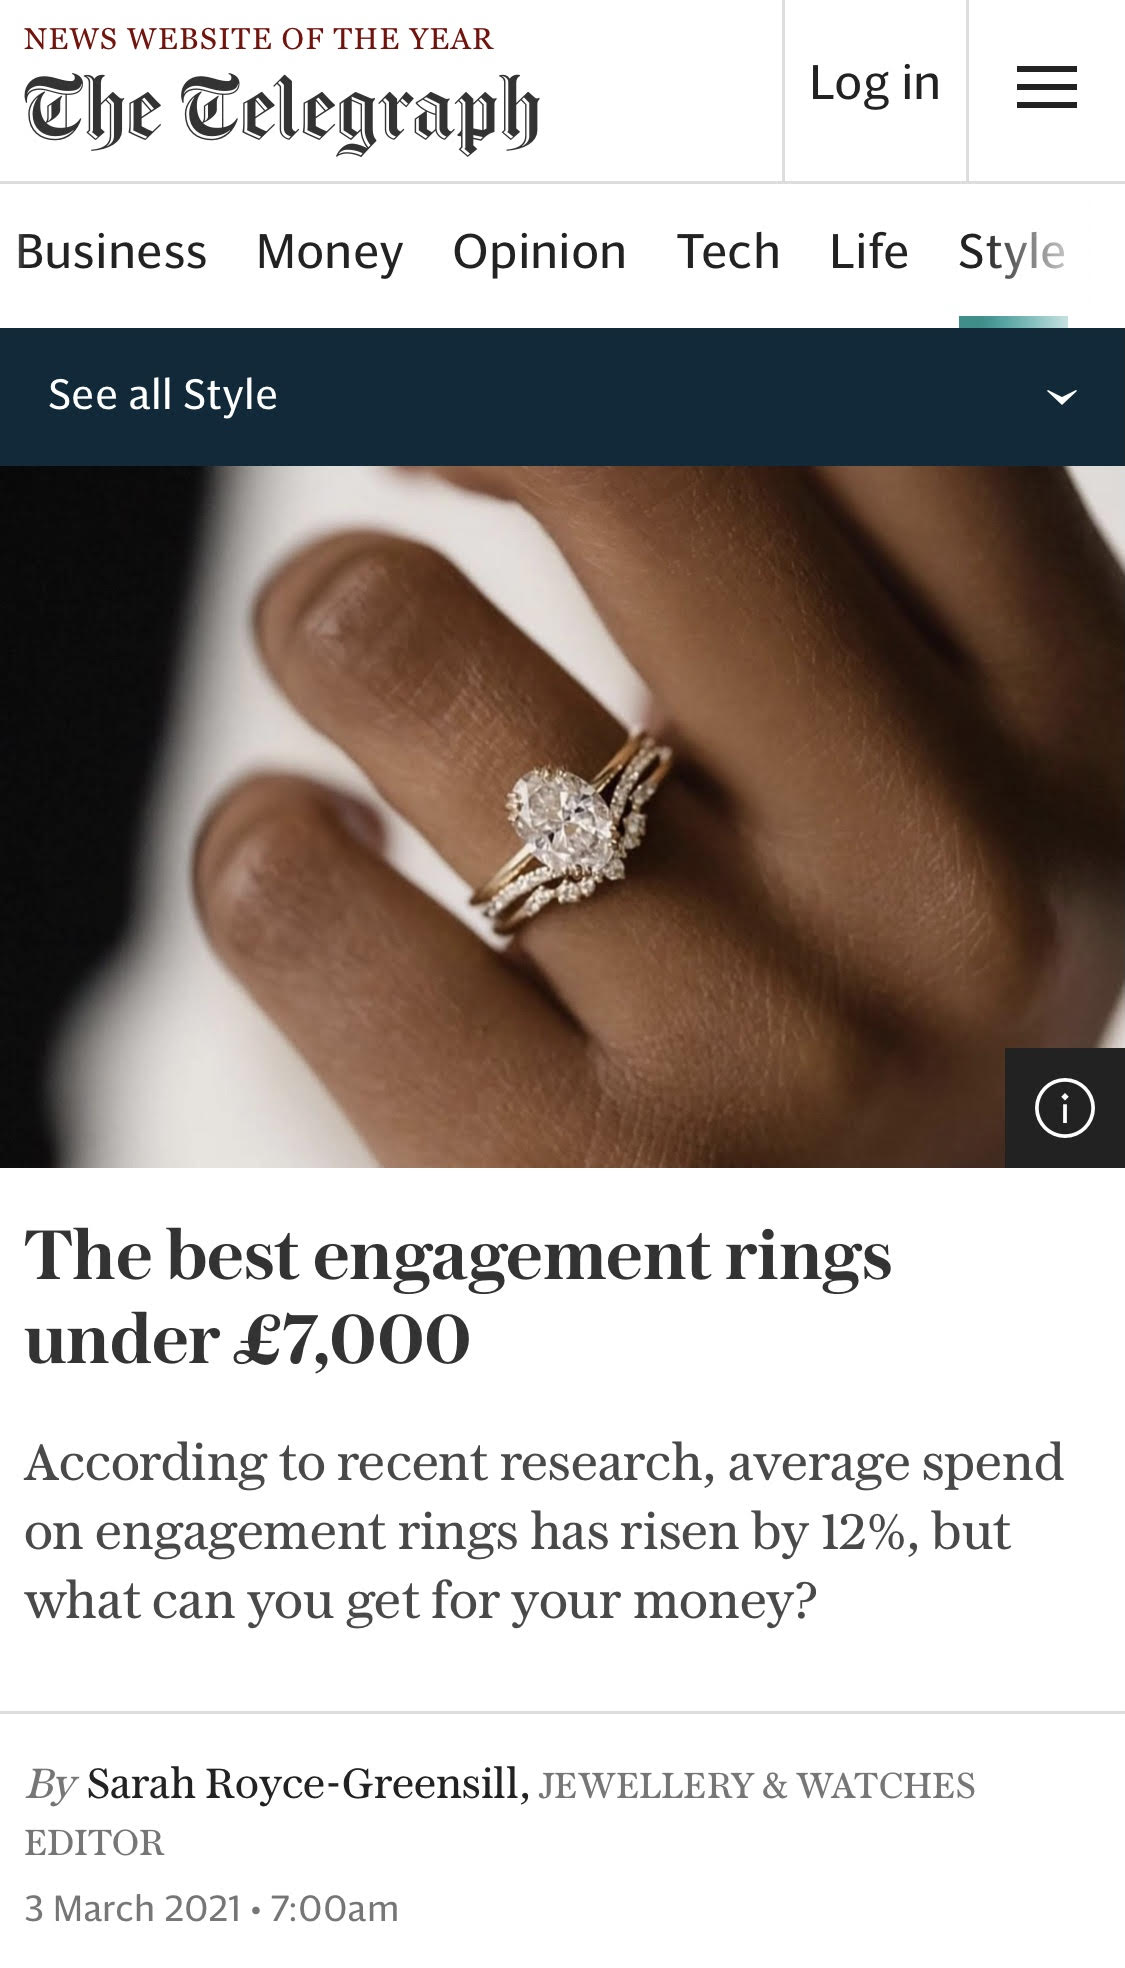 OUR DIAMOND FLORAL CLUSTER RING MAKES THE CUT!